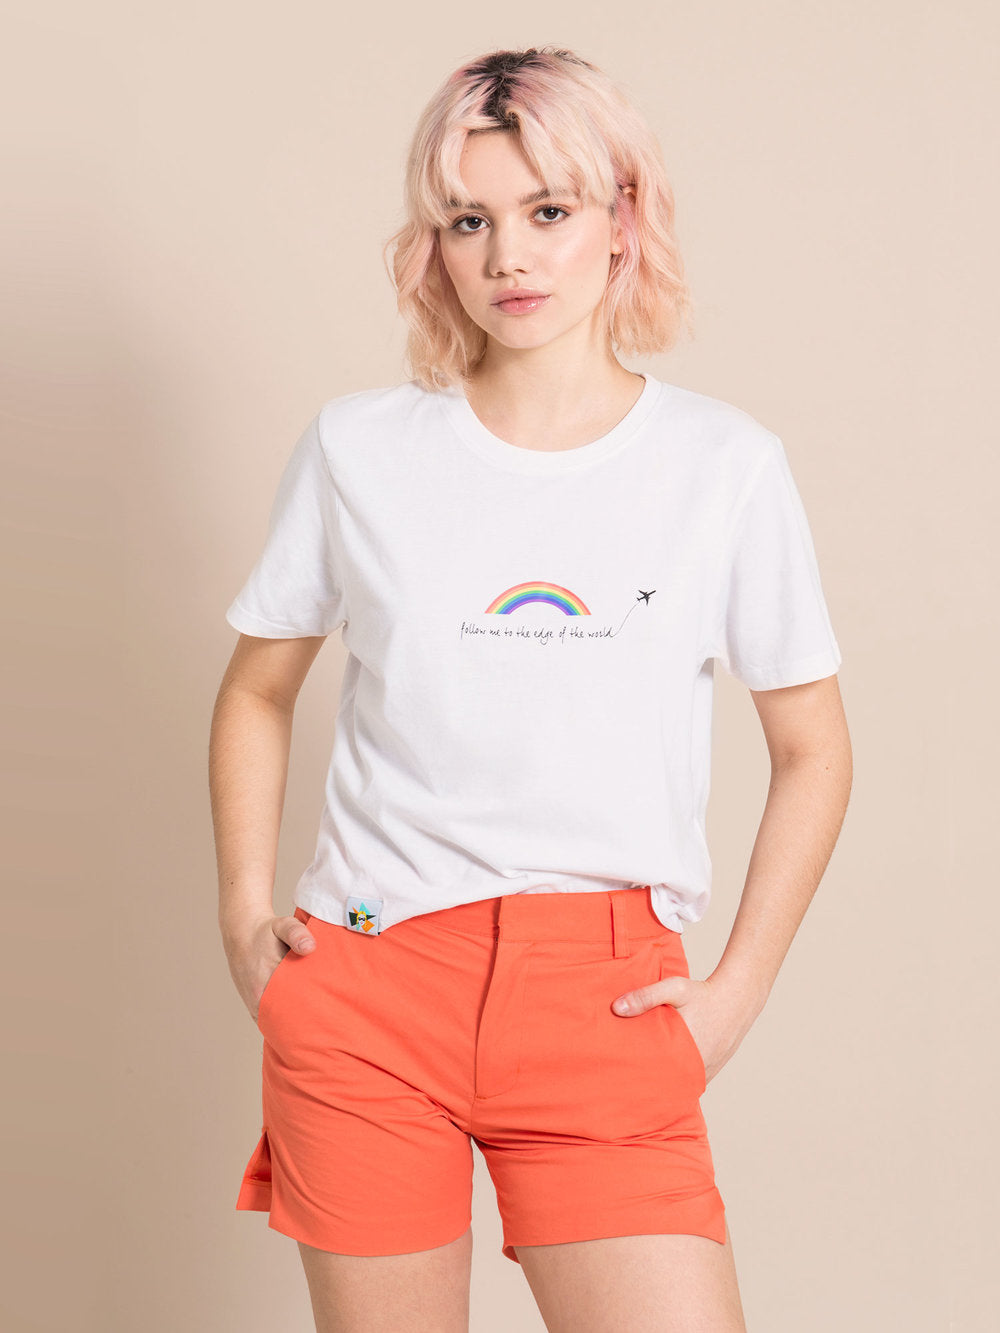 Woman wearing white recycled cotton t-shirt with print and orange shorts with crease